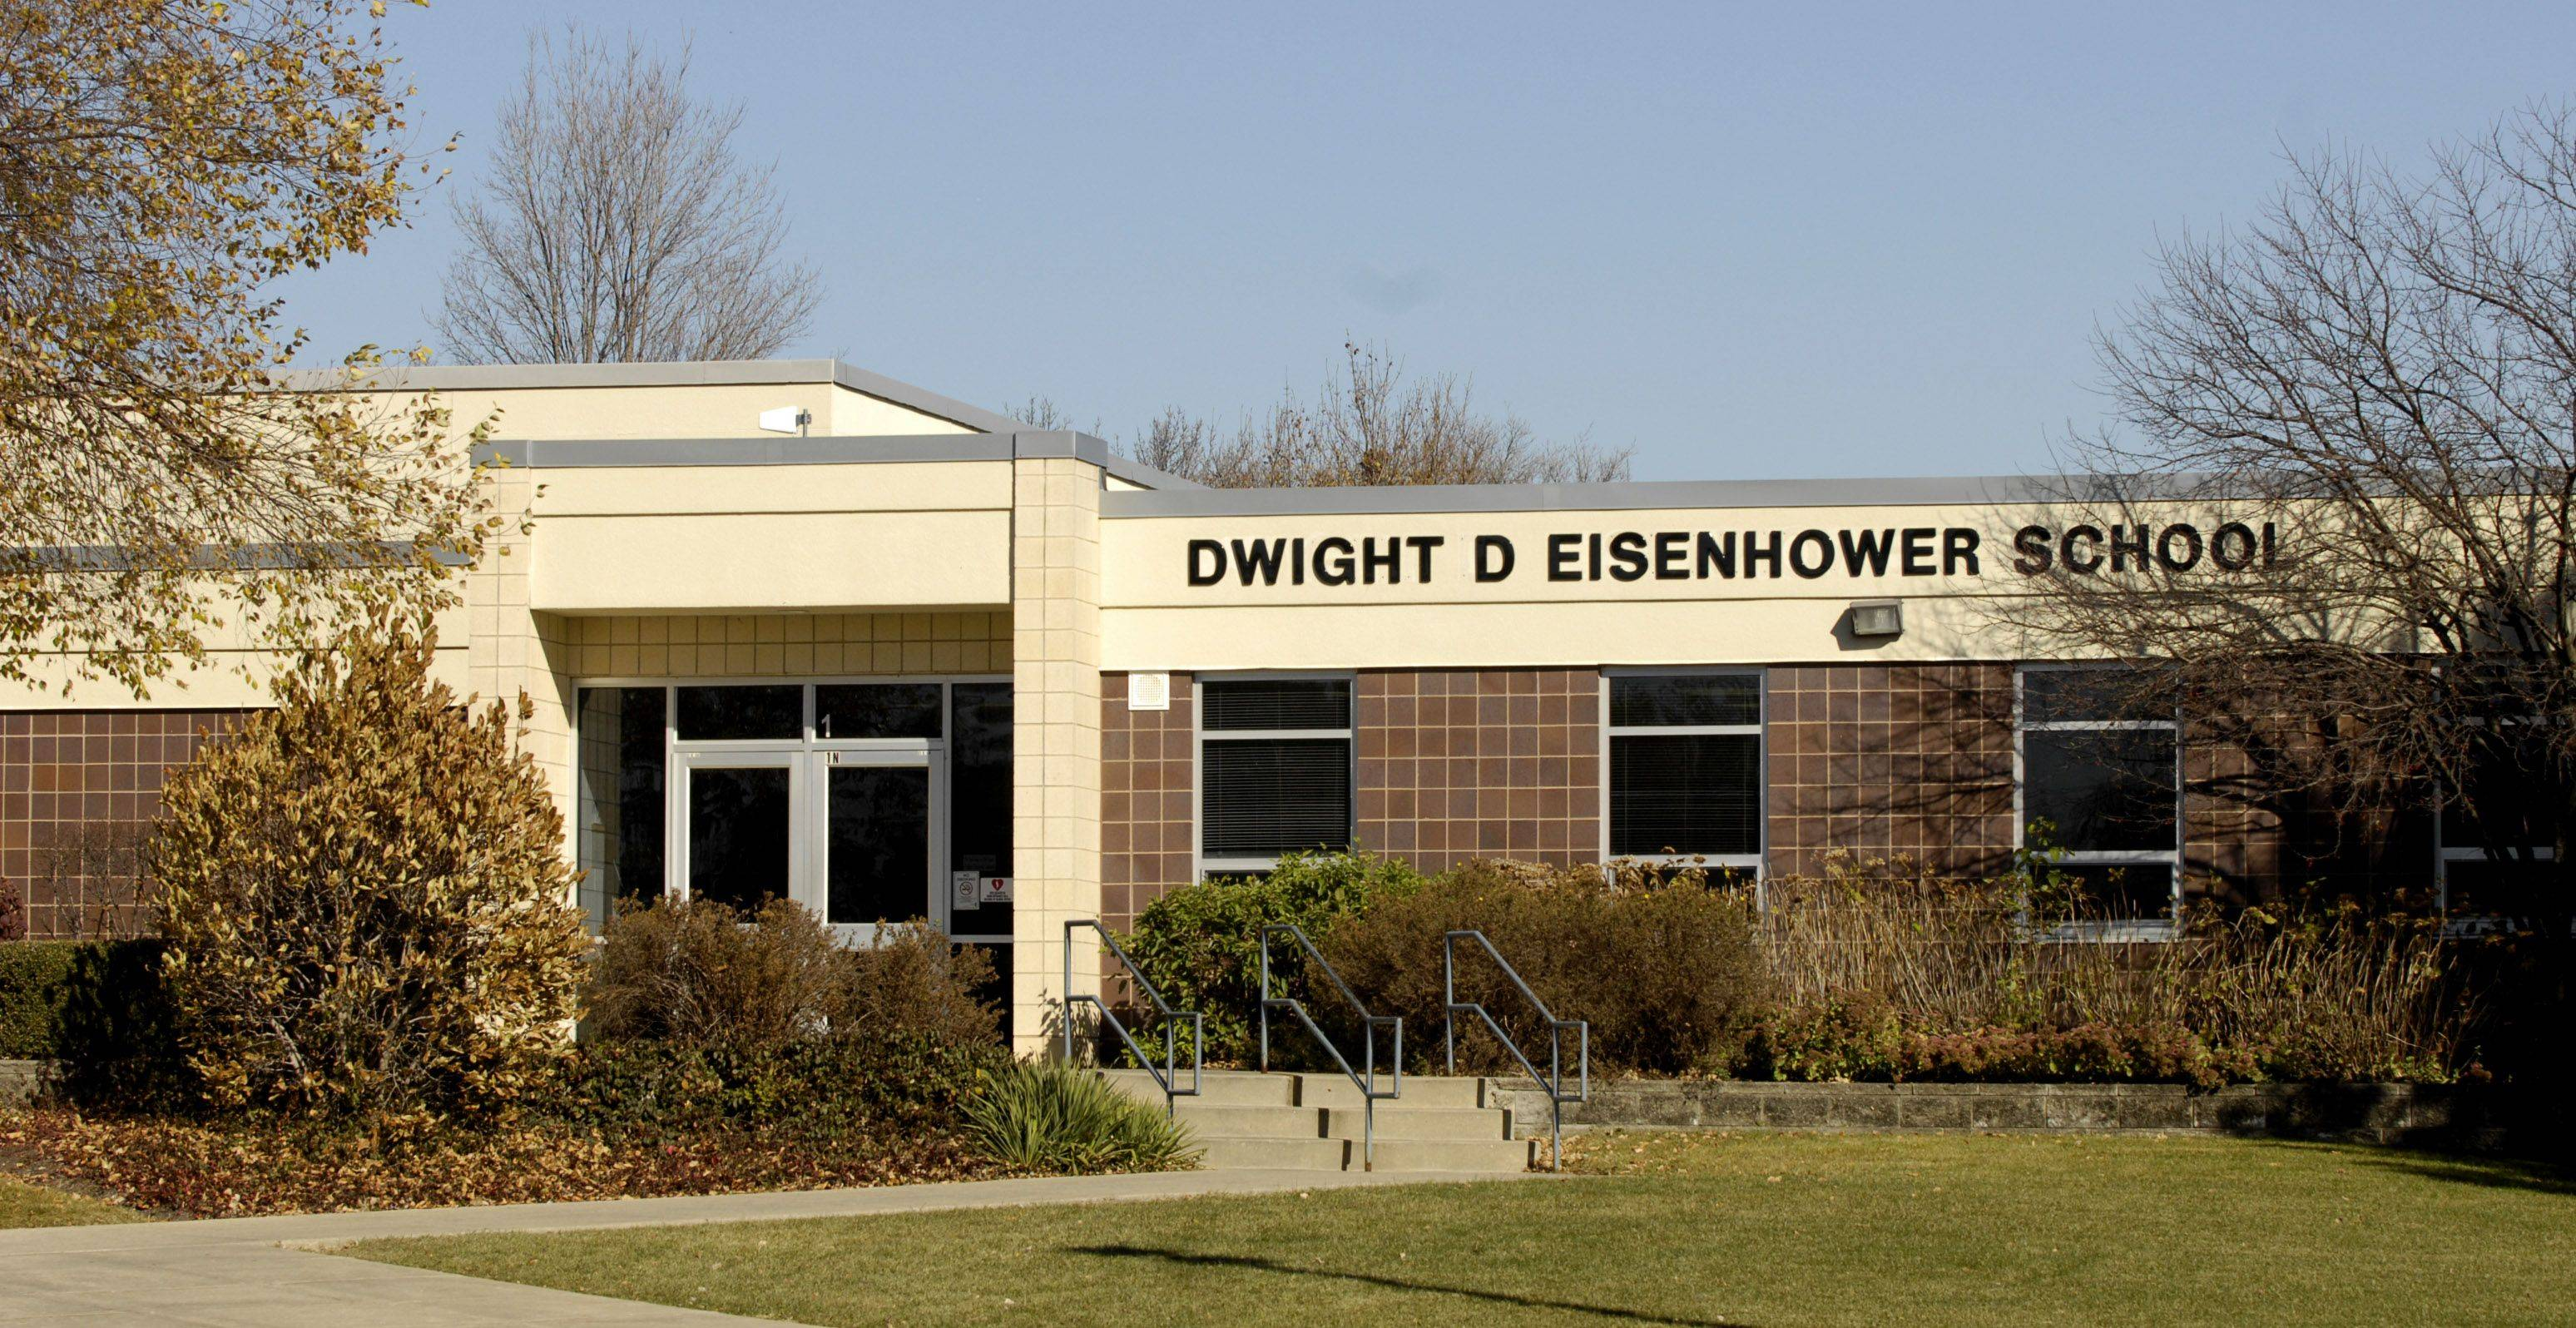 Dwight D. Eisenhower School is separated from the other schools by several blocks.